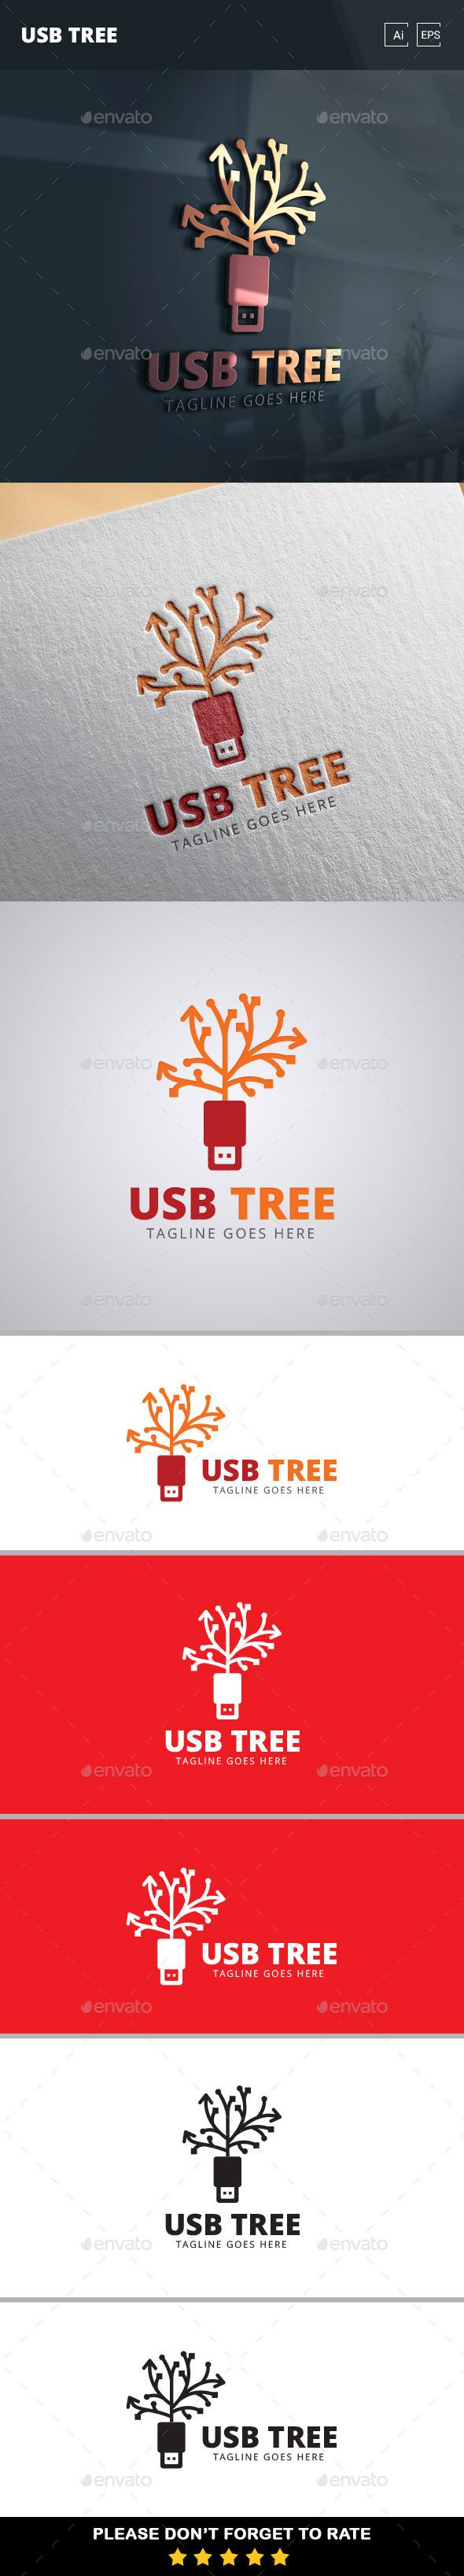 USB Tree  - Logo Design Template Vector #logotype Download it here: http://graphicriver.net/item/usb-tree-logo-template/11369887?s_rank=1163?ref=nexion